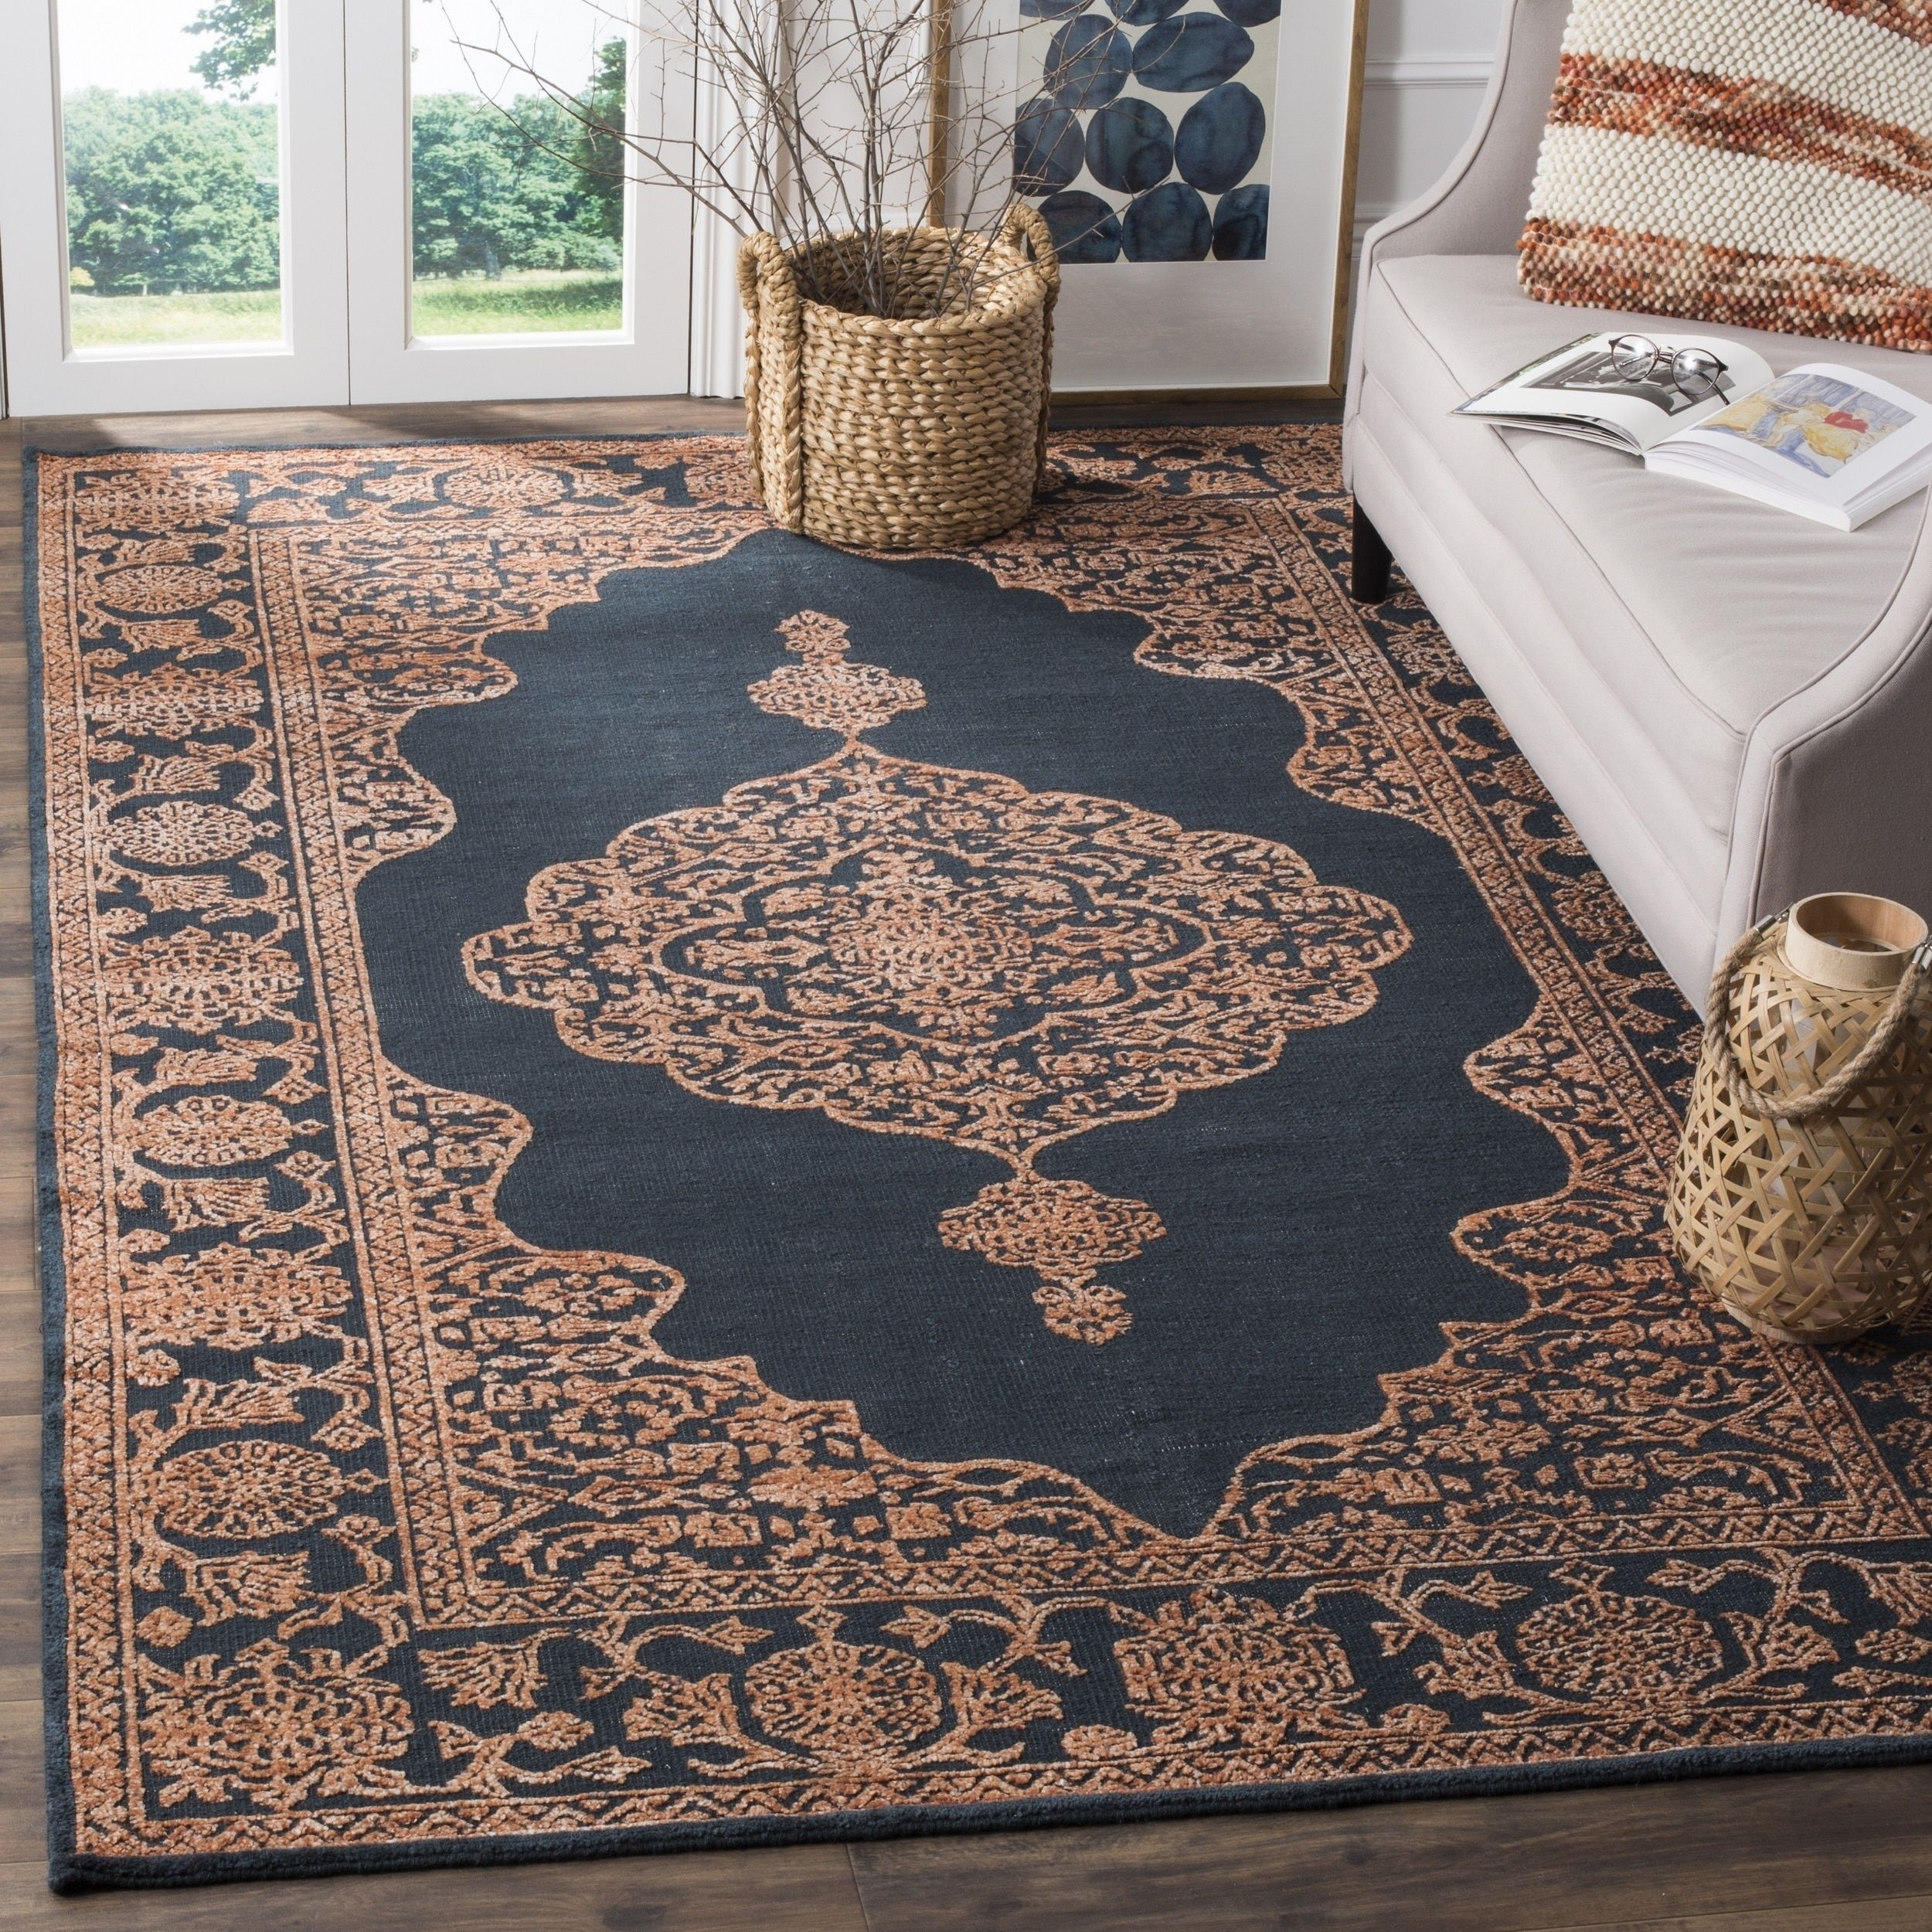 Safavieh Hand Knotted Chester Alwilda Oriental Wool Rug Rugs Area Rugs Colorful Rugs